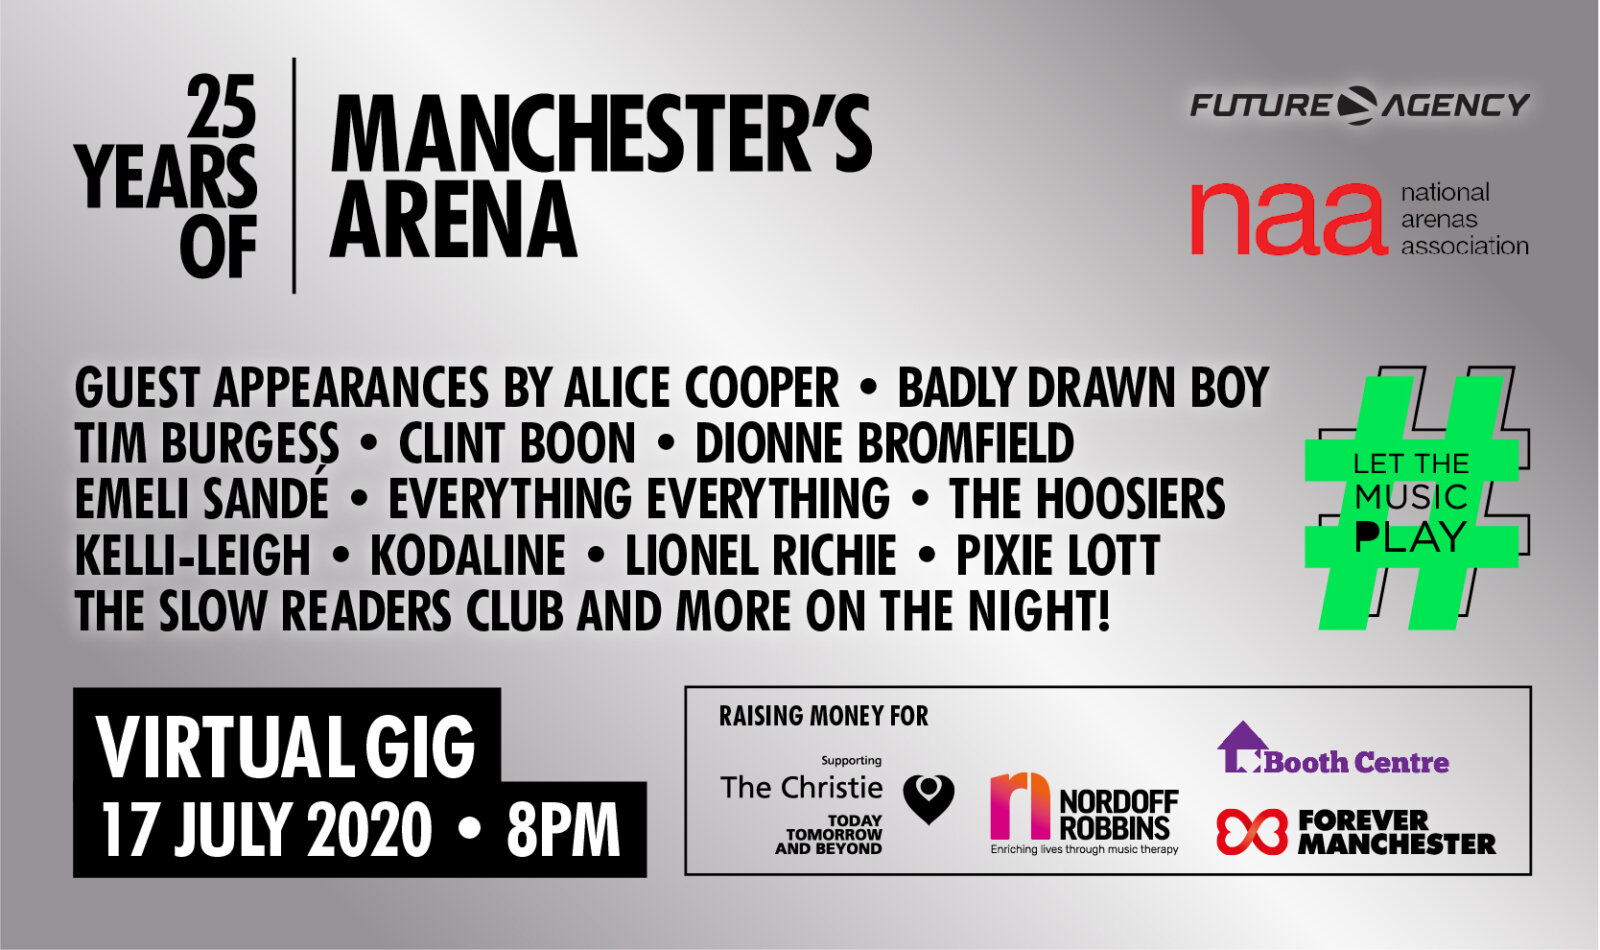 Manchester Arena announce 25th anniversary virtual gig starring Alice Cooper, Lionel Richie and Tim Burgess, The Manc